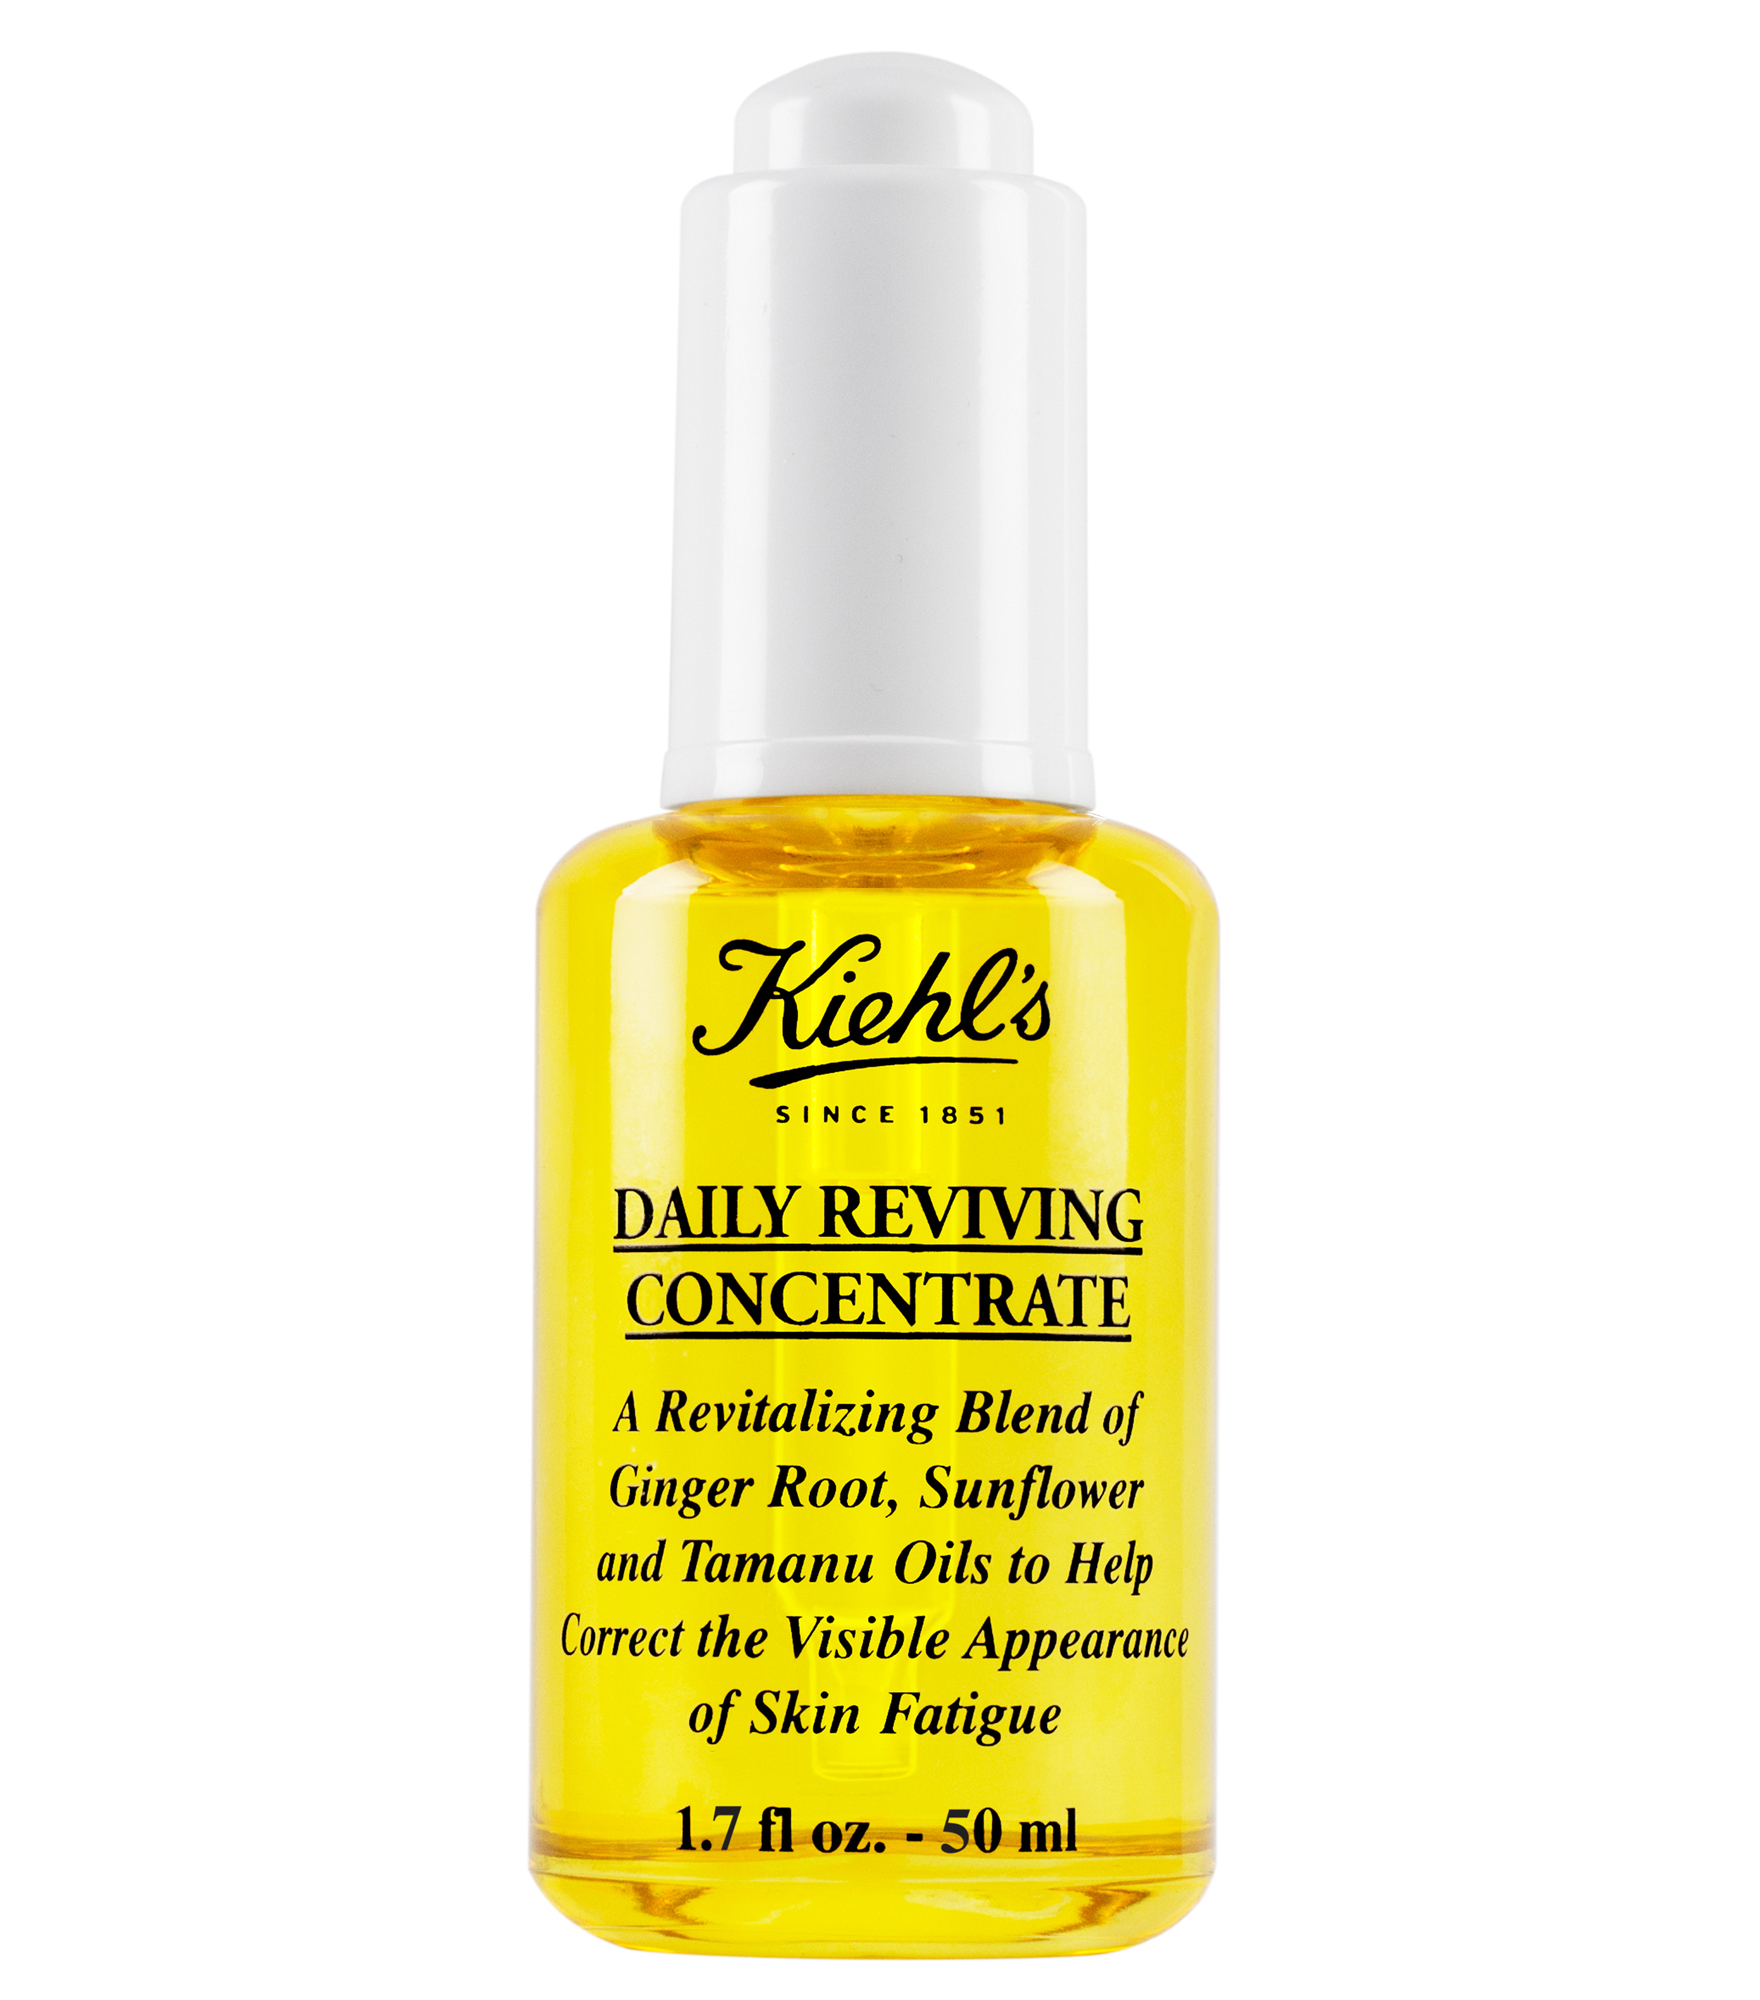 Daily Reviving Concentrate Antioxidant Facial Oil Kiehls Mineral Botanica Whitening Plus Complex Day Cream